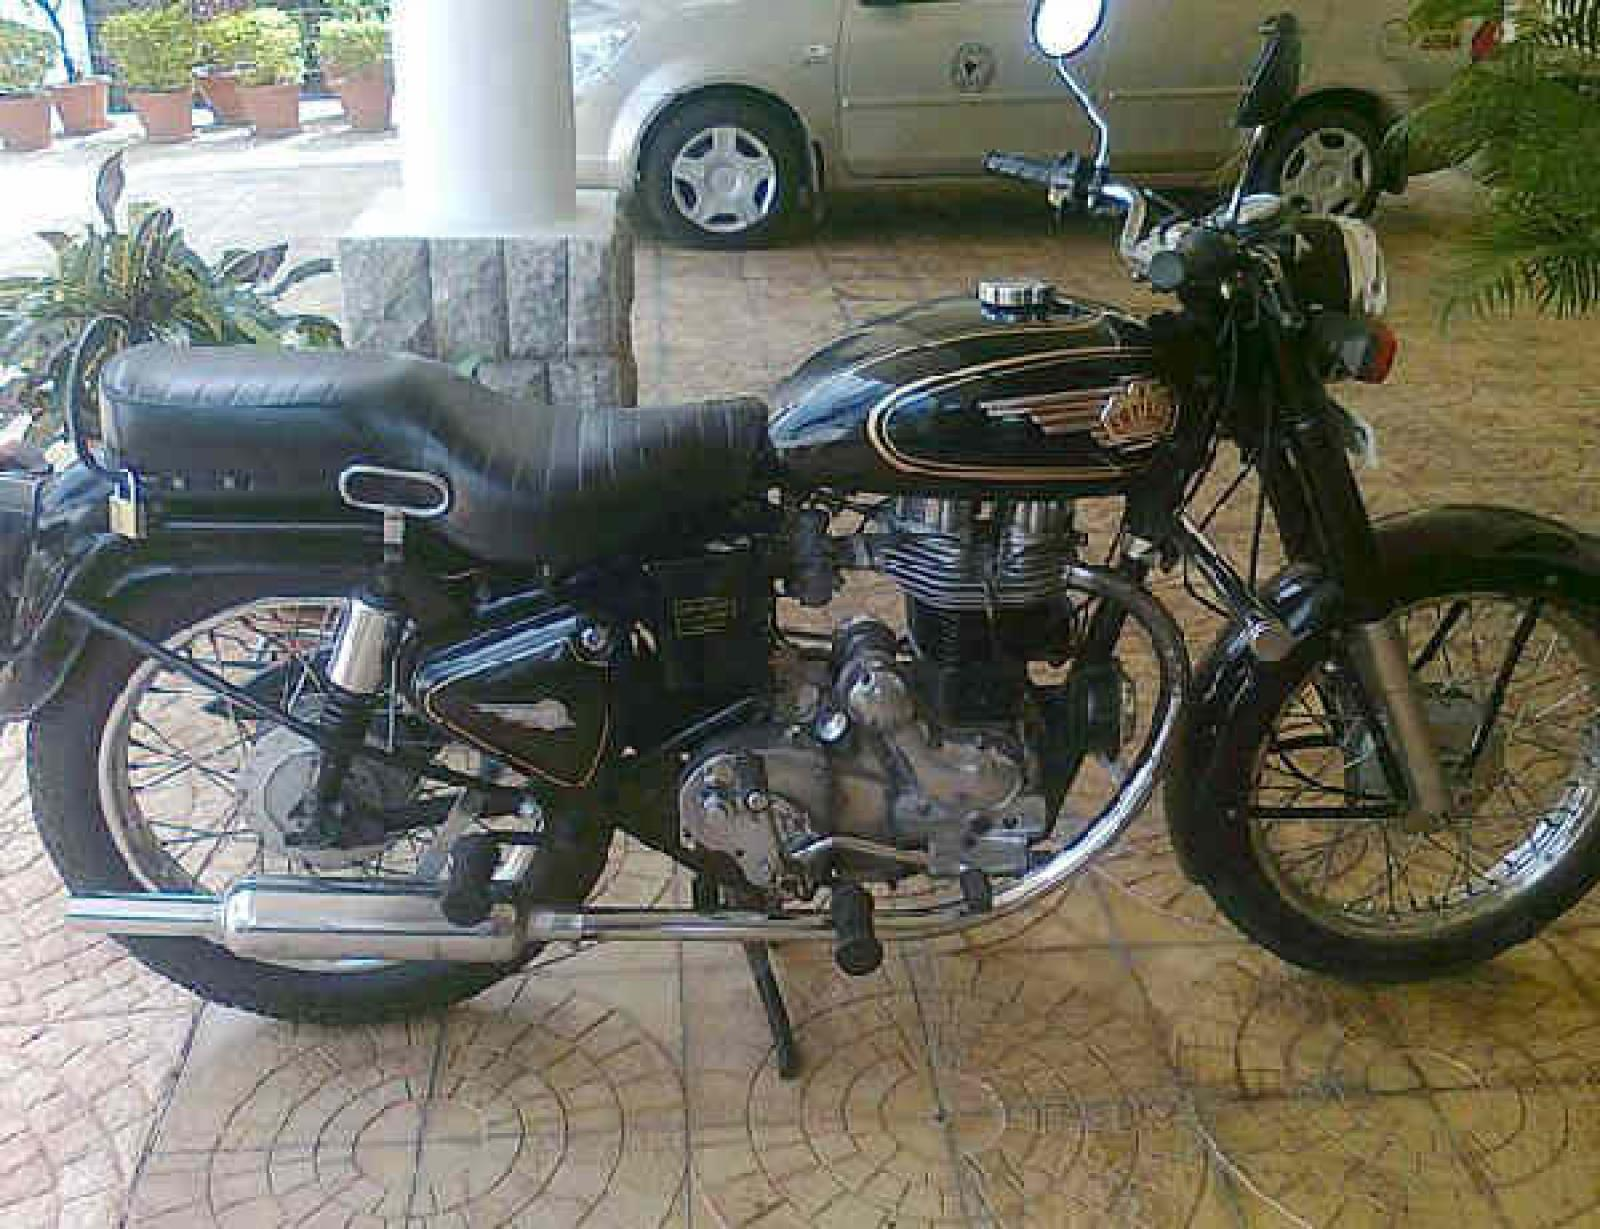 1991 Enfield 500 Bullet (reduced effect) #10